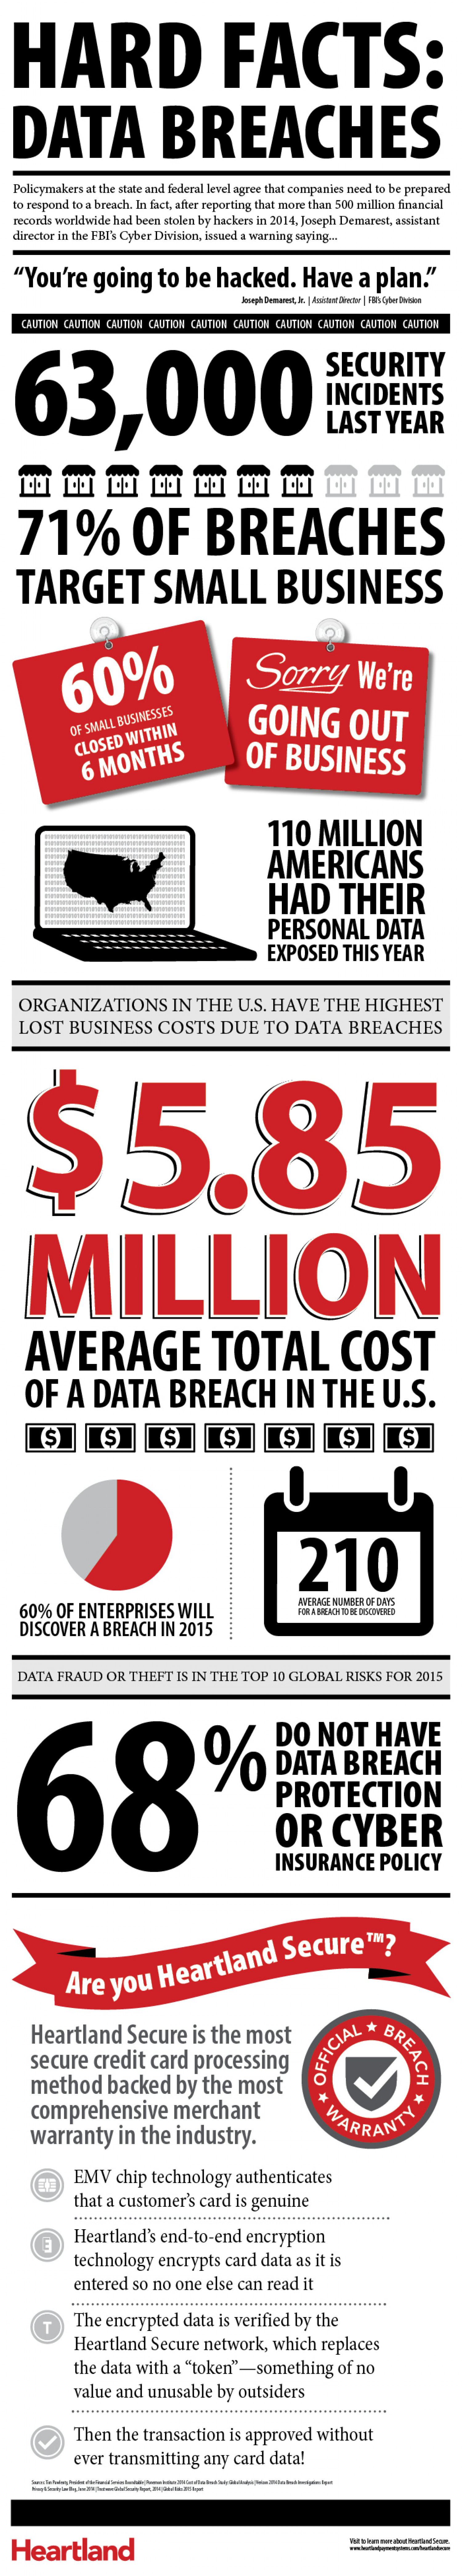 Hard Facts: Data Breaches Infographic